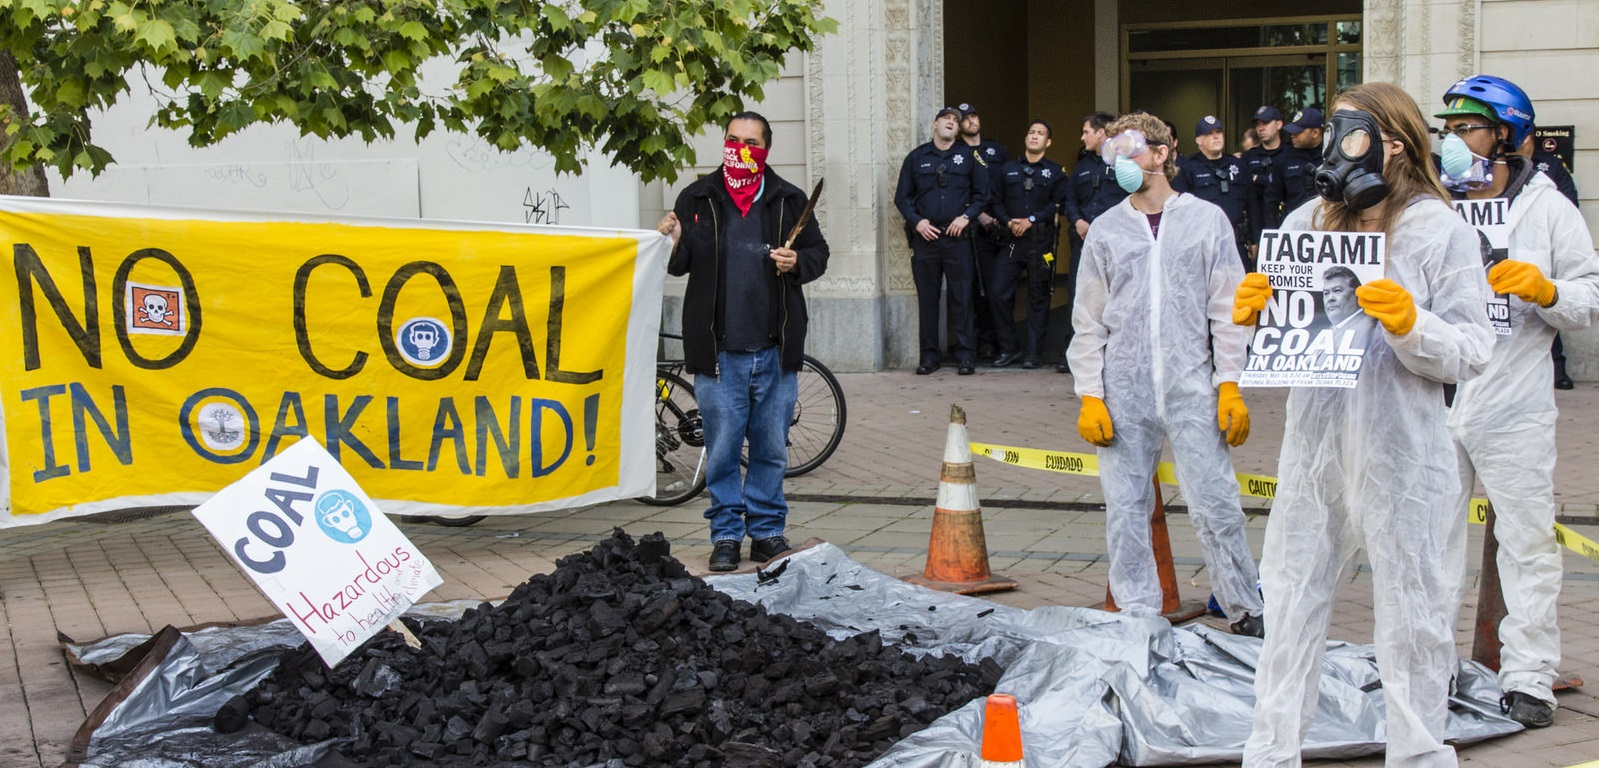 Demonstrators dump coal in front of developer Phil Tagami's office.